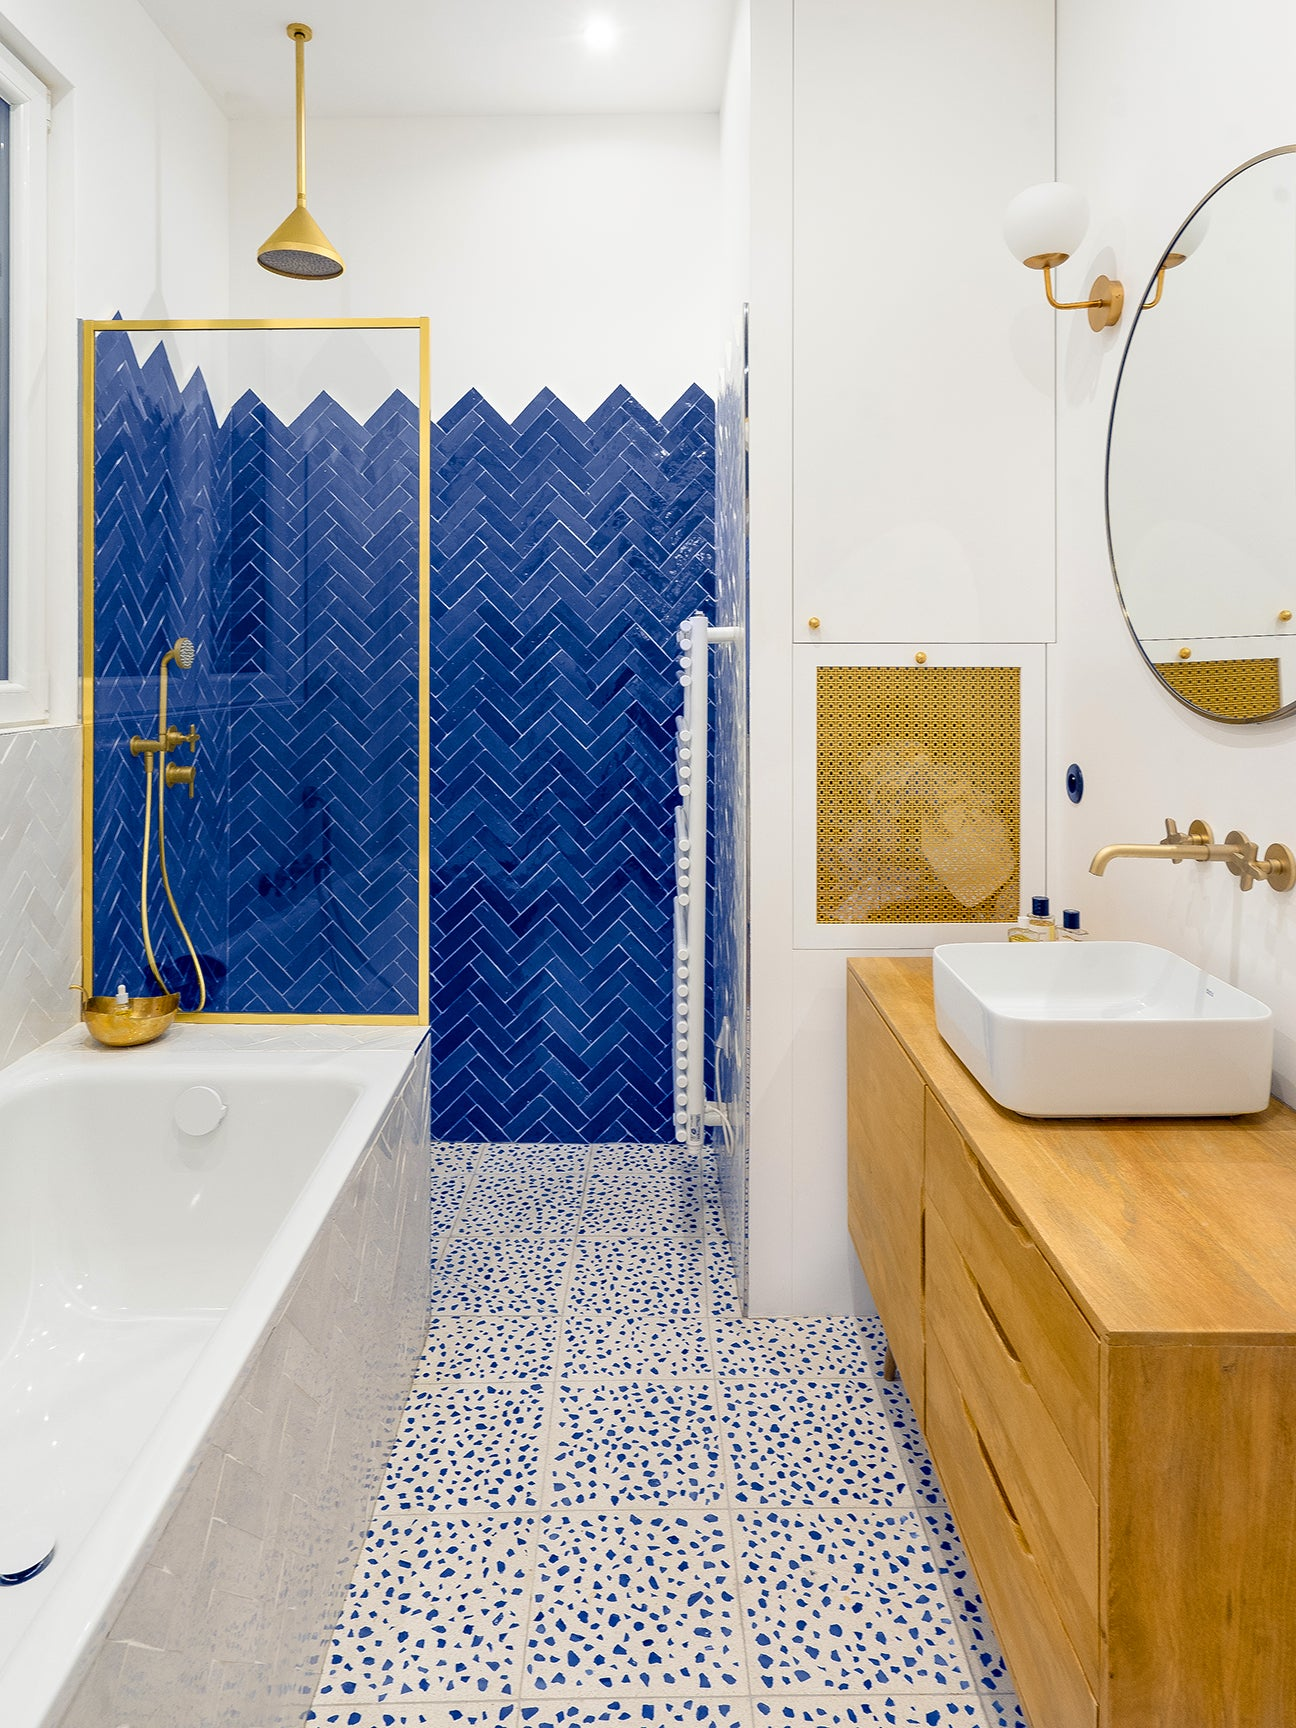 shower with blue tile pattern